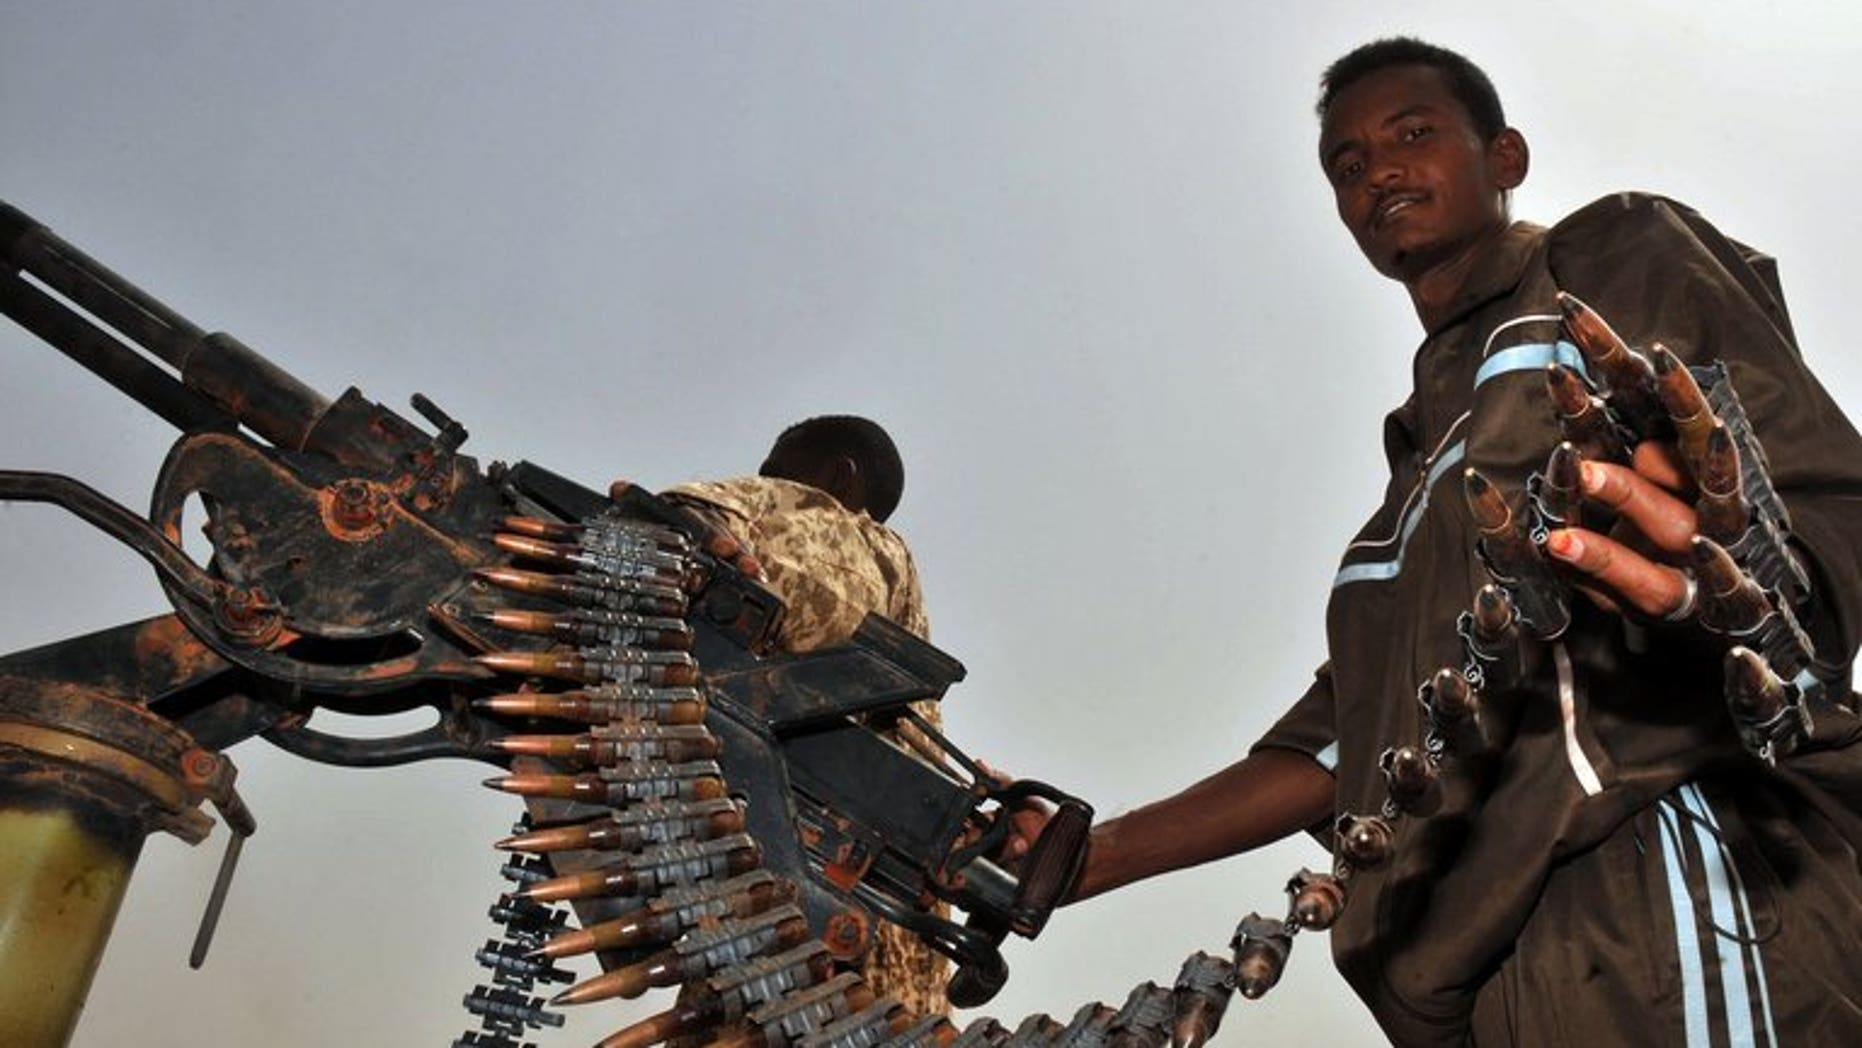 A Sudanese soldier poses with a machine gun in the town of Heglig bordering South Sudan on April 24, 2012. A Sudanese soldier has been killed in a border clash with South Sudanese forces.